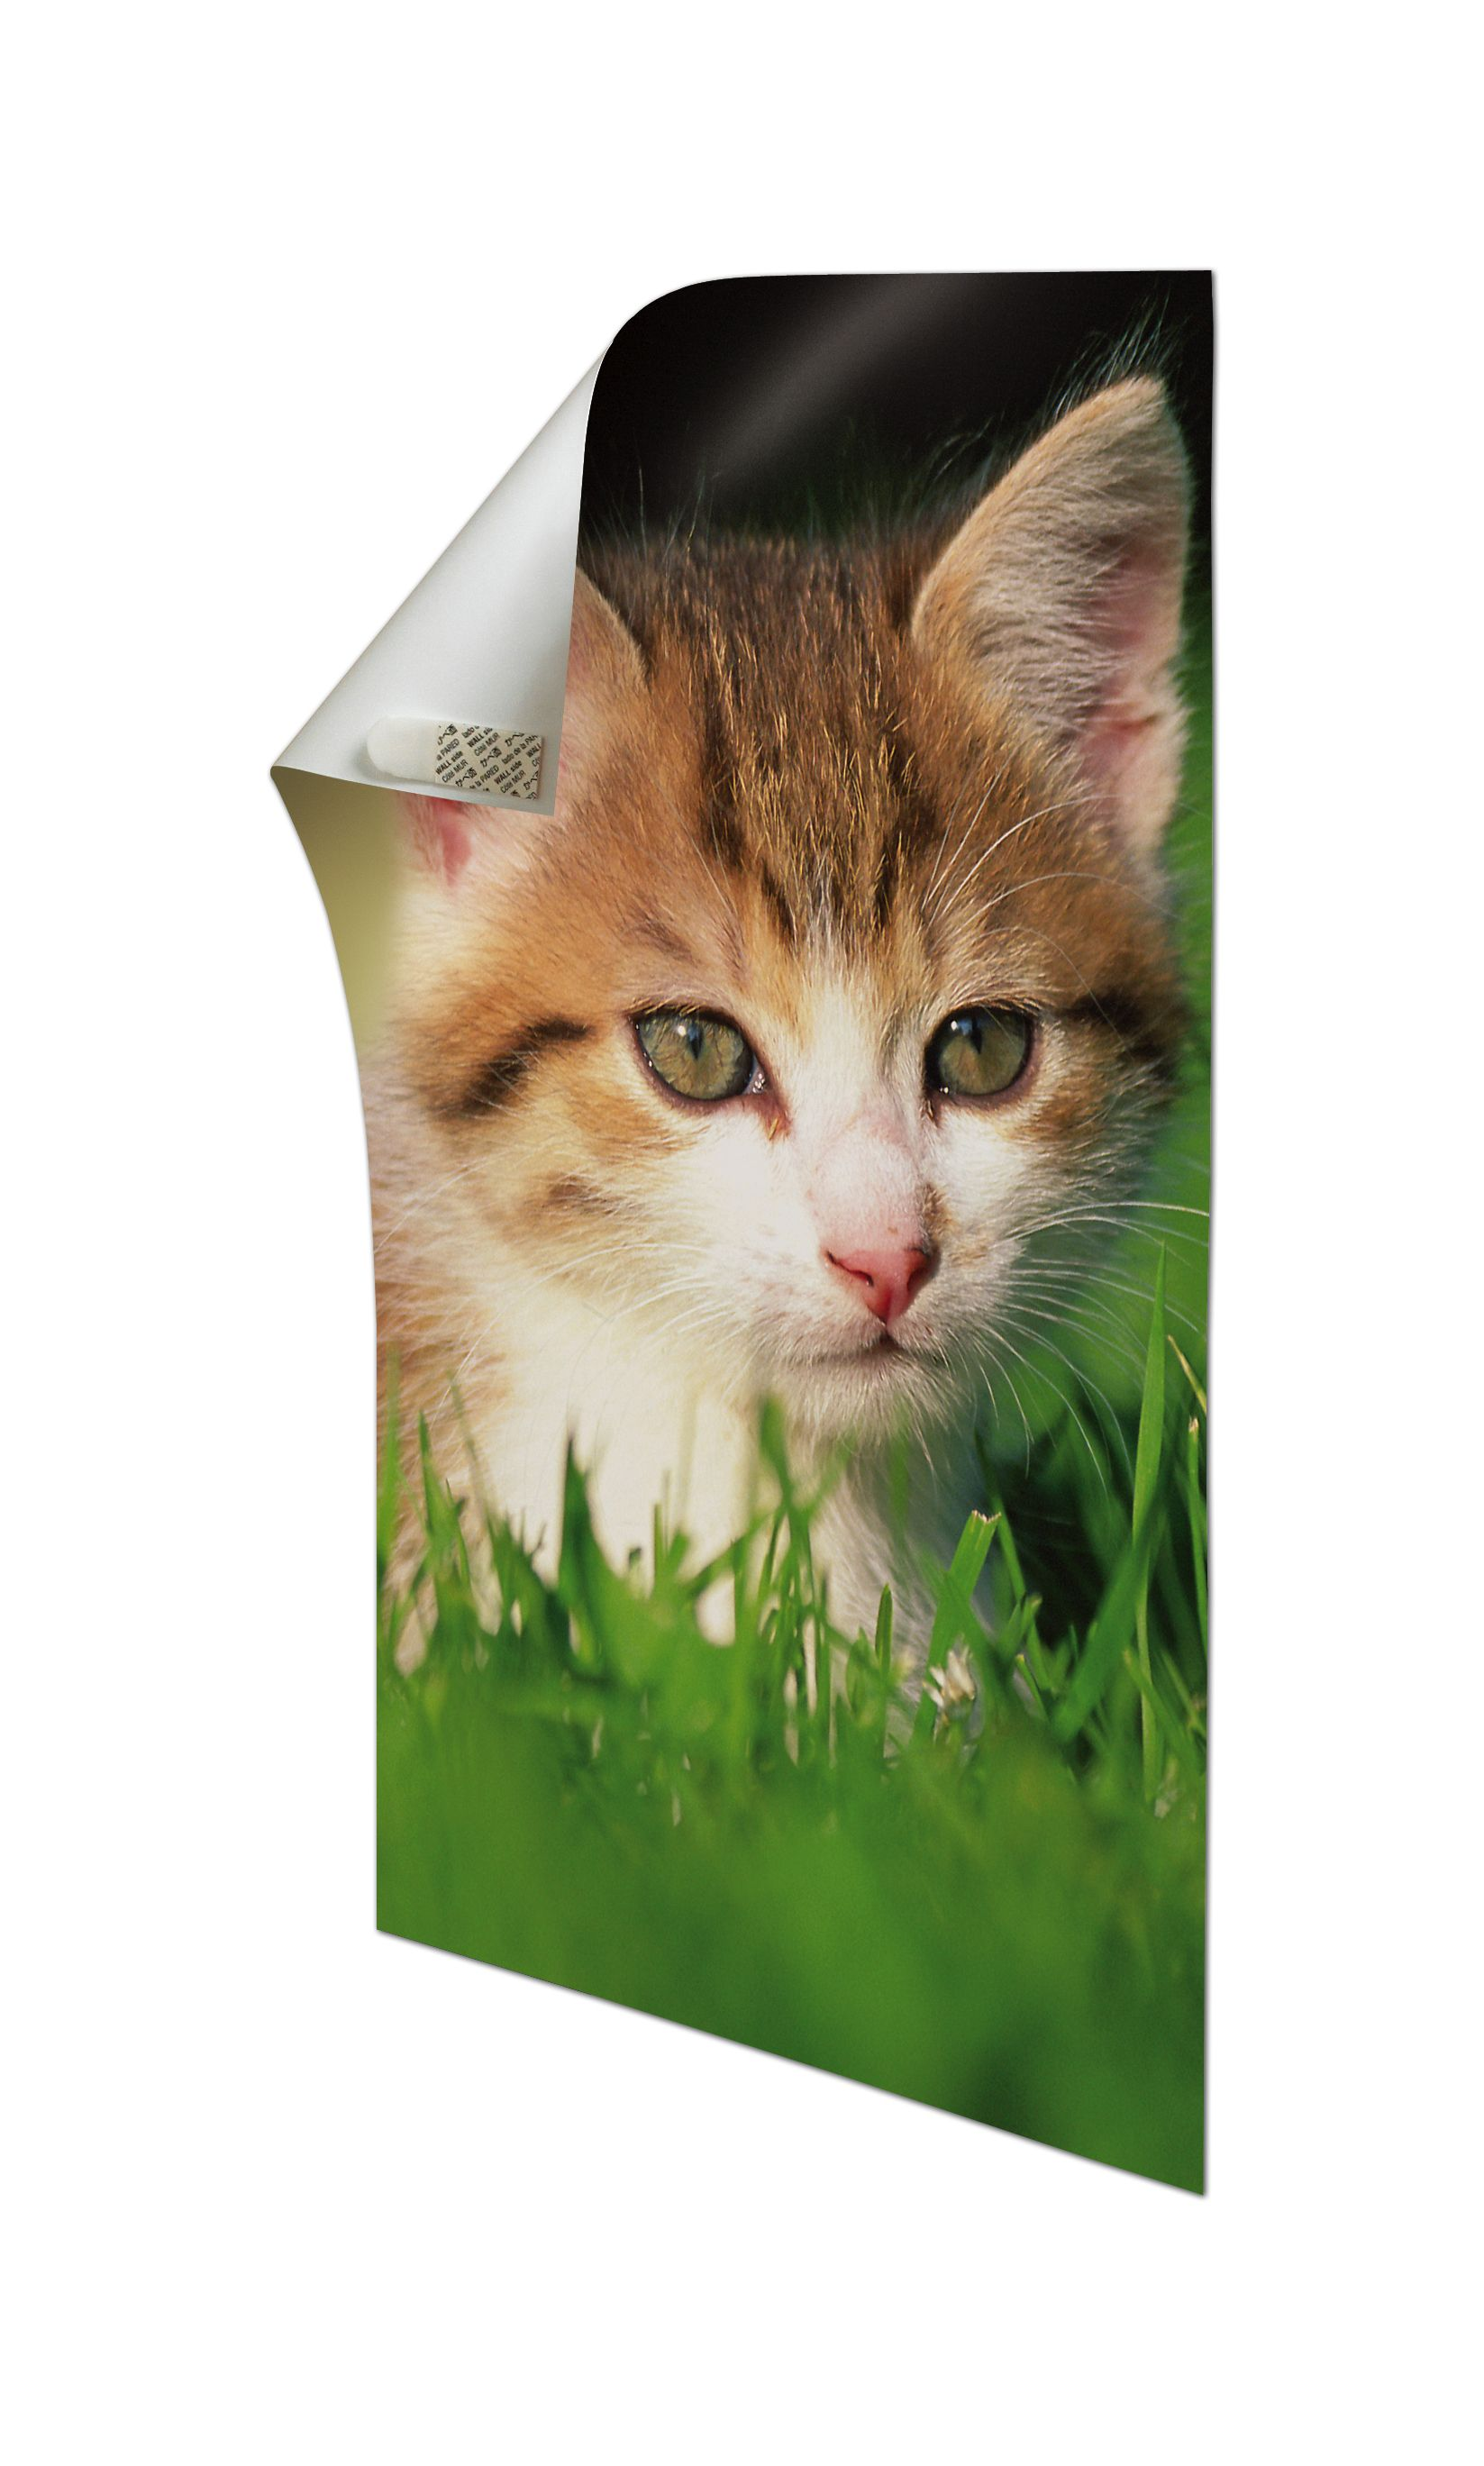 Yes It S A Cat But It S A Really Cool Cat Staring At You From The Wall Thanks To Command R Poster Hanging S Hanging Posters Command Strips Decorative Hooks